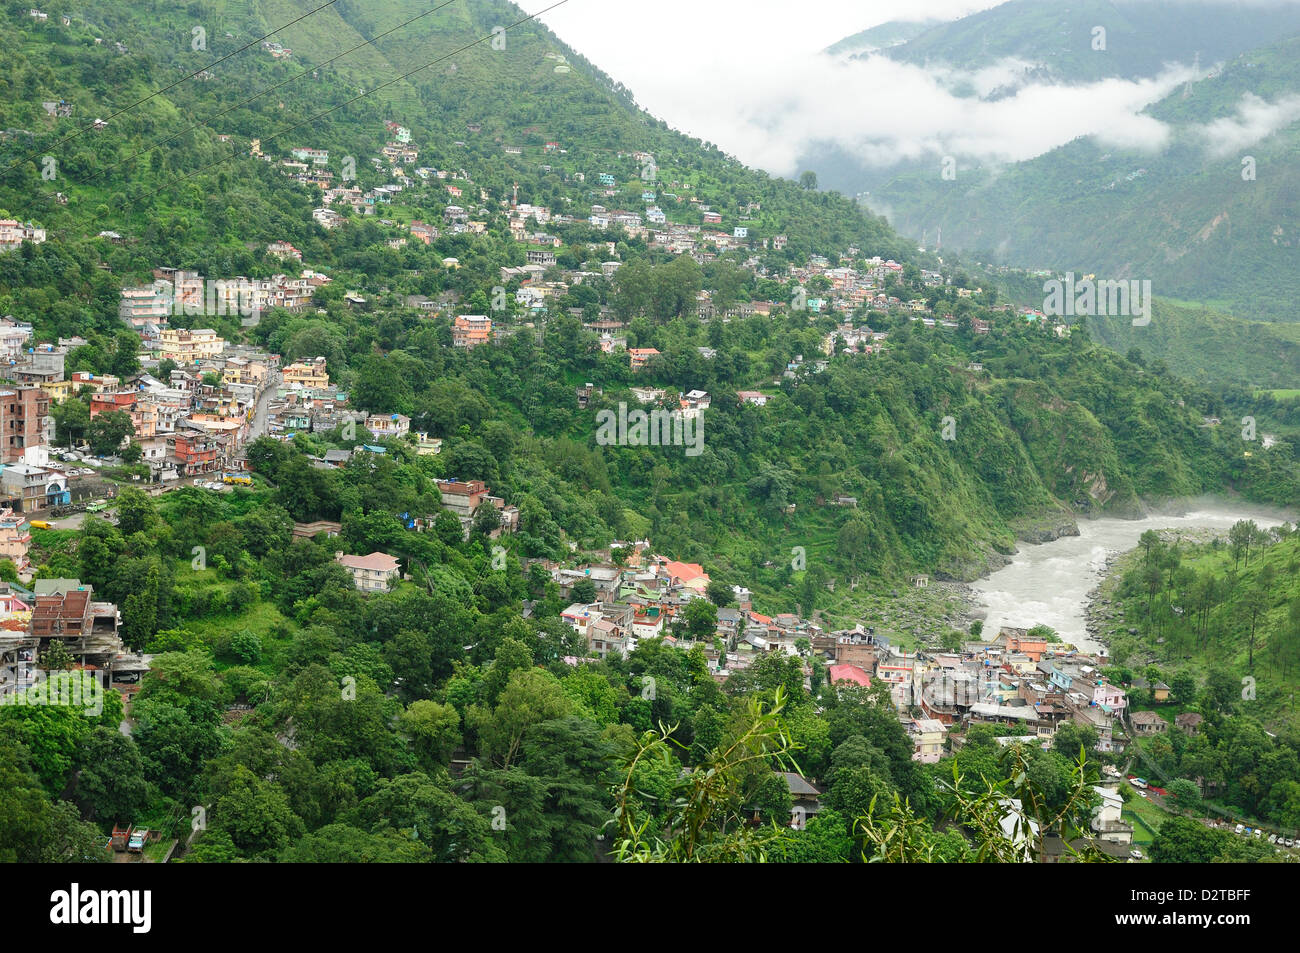 View of Chamba town and Ravi River, Himachal Pradesh, India, Asia - Stock Image